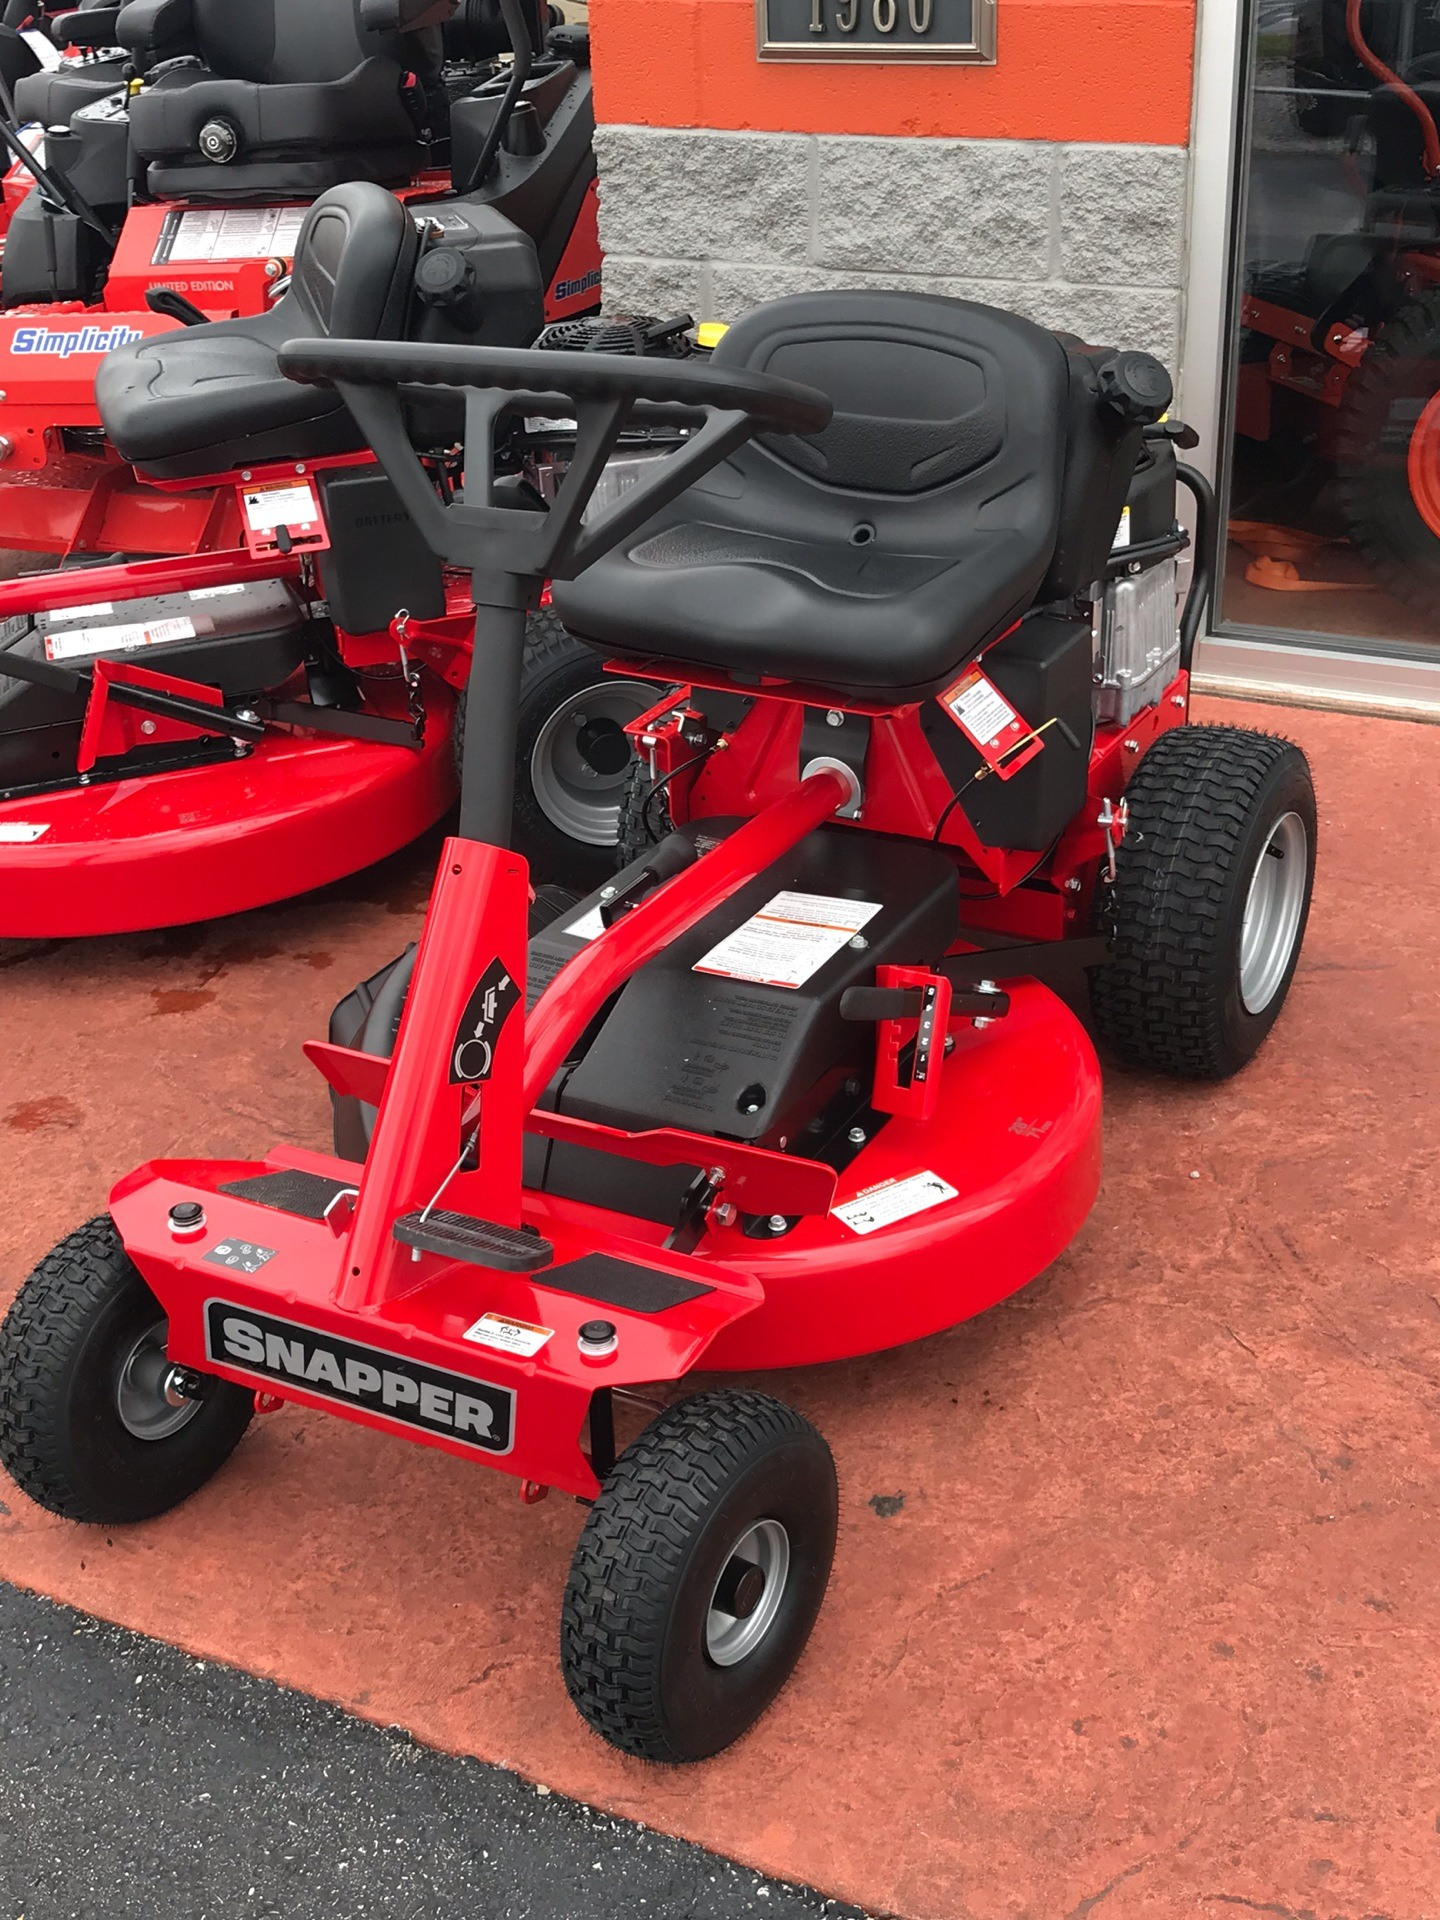 2019 Snapper Classic Rear Engine Riding Lawn Mower in Evansville, Indiana - Photo 2